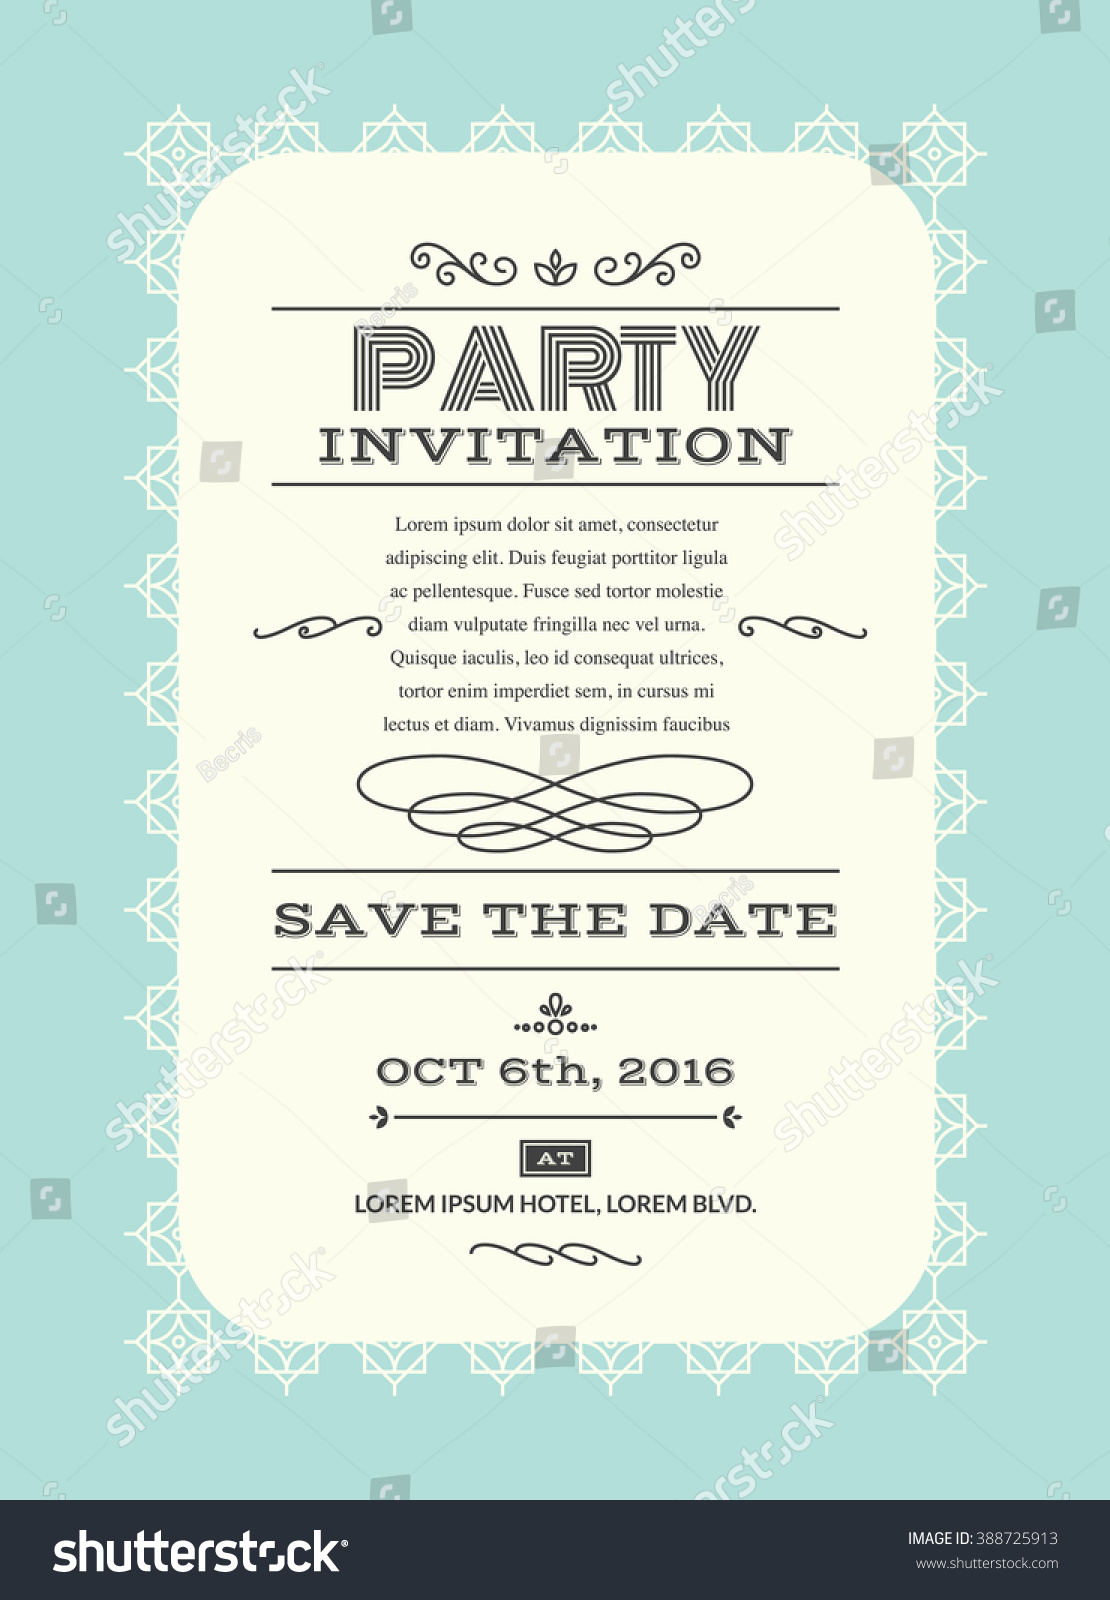 Wedding Party Invitation Card Layout Template Stock Vector (2018 ...